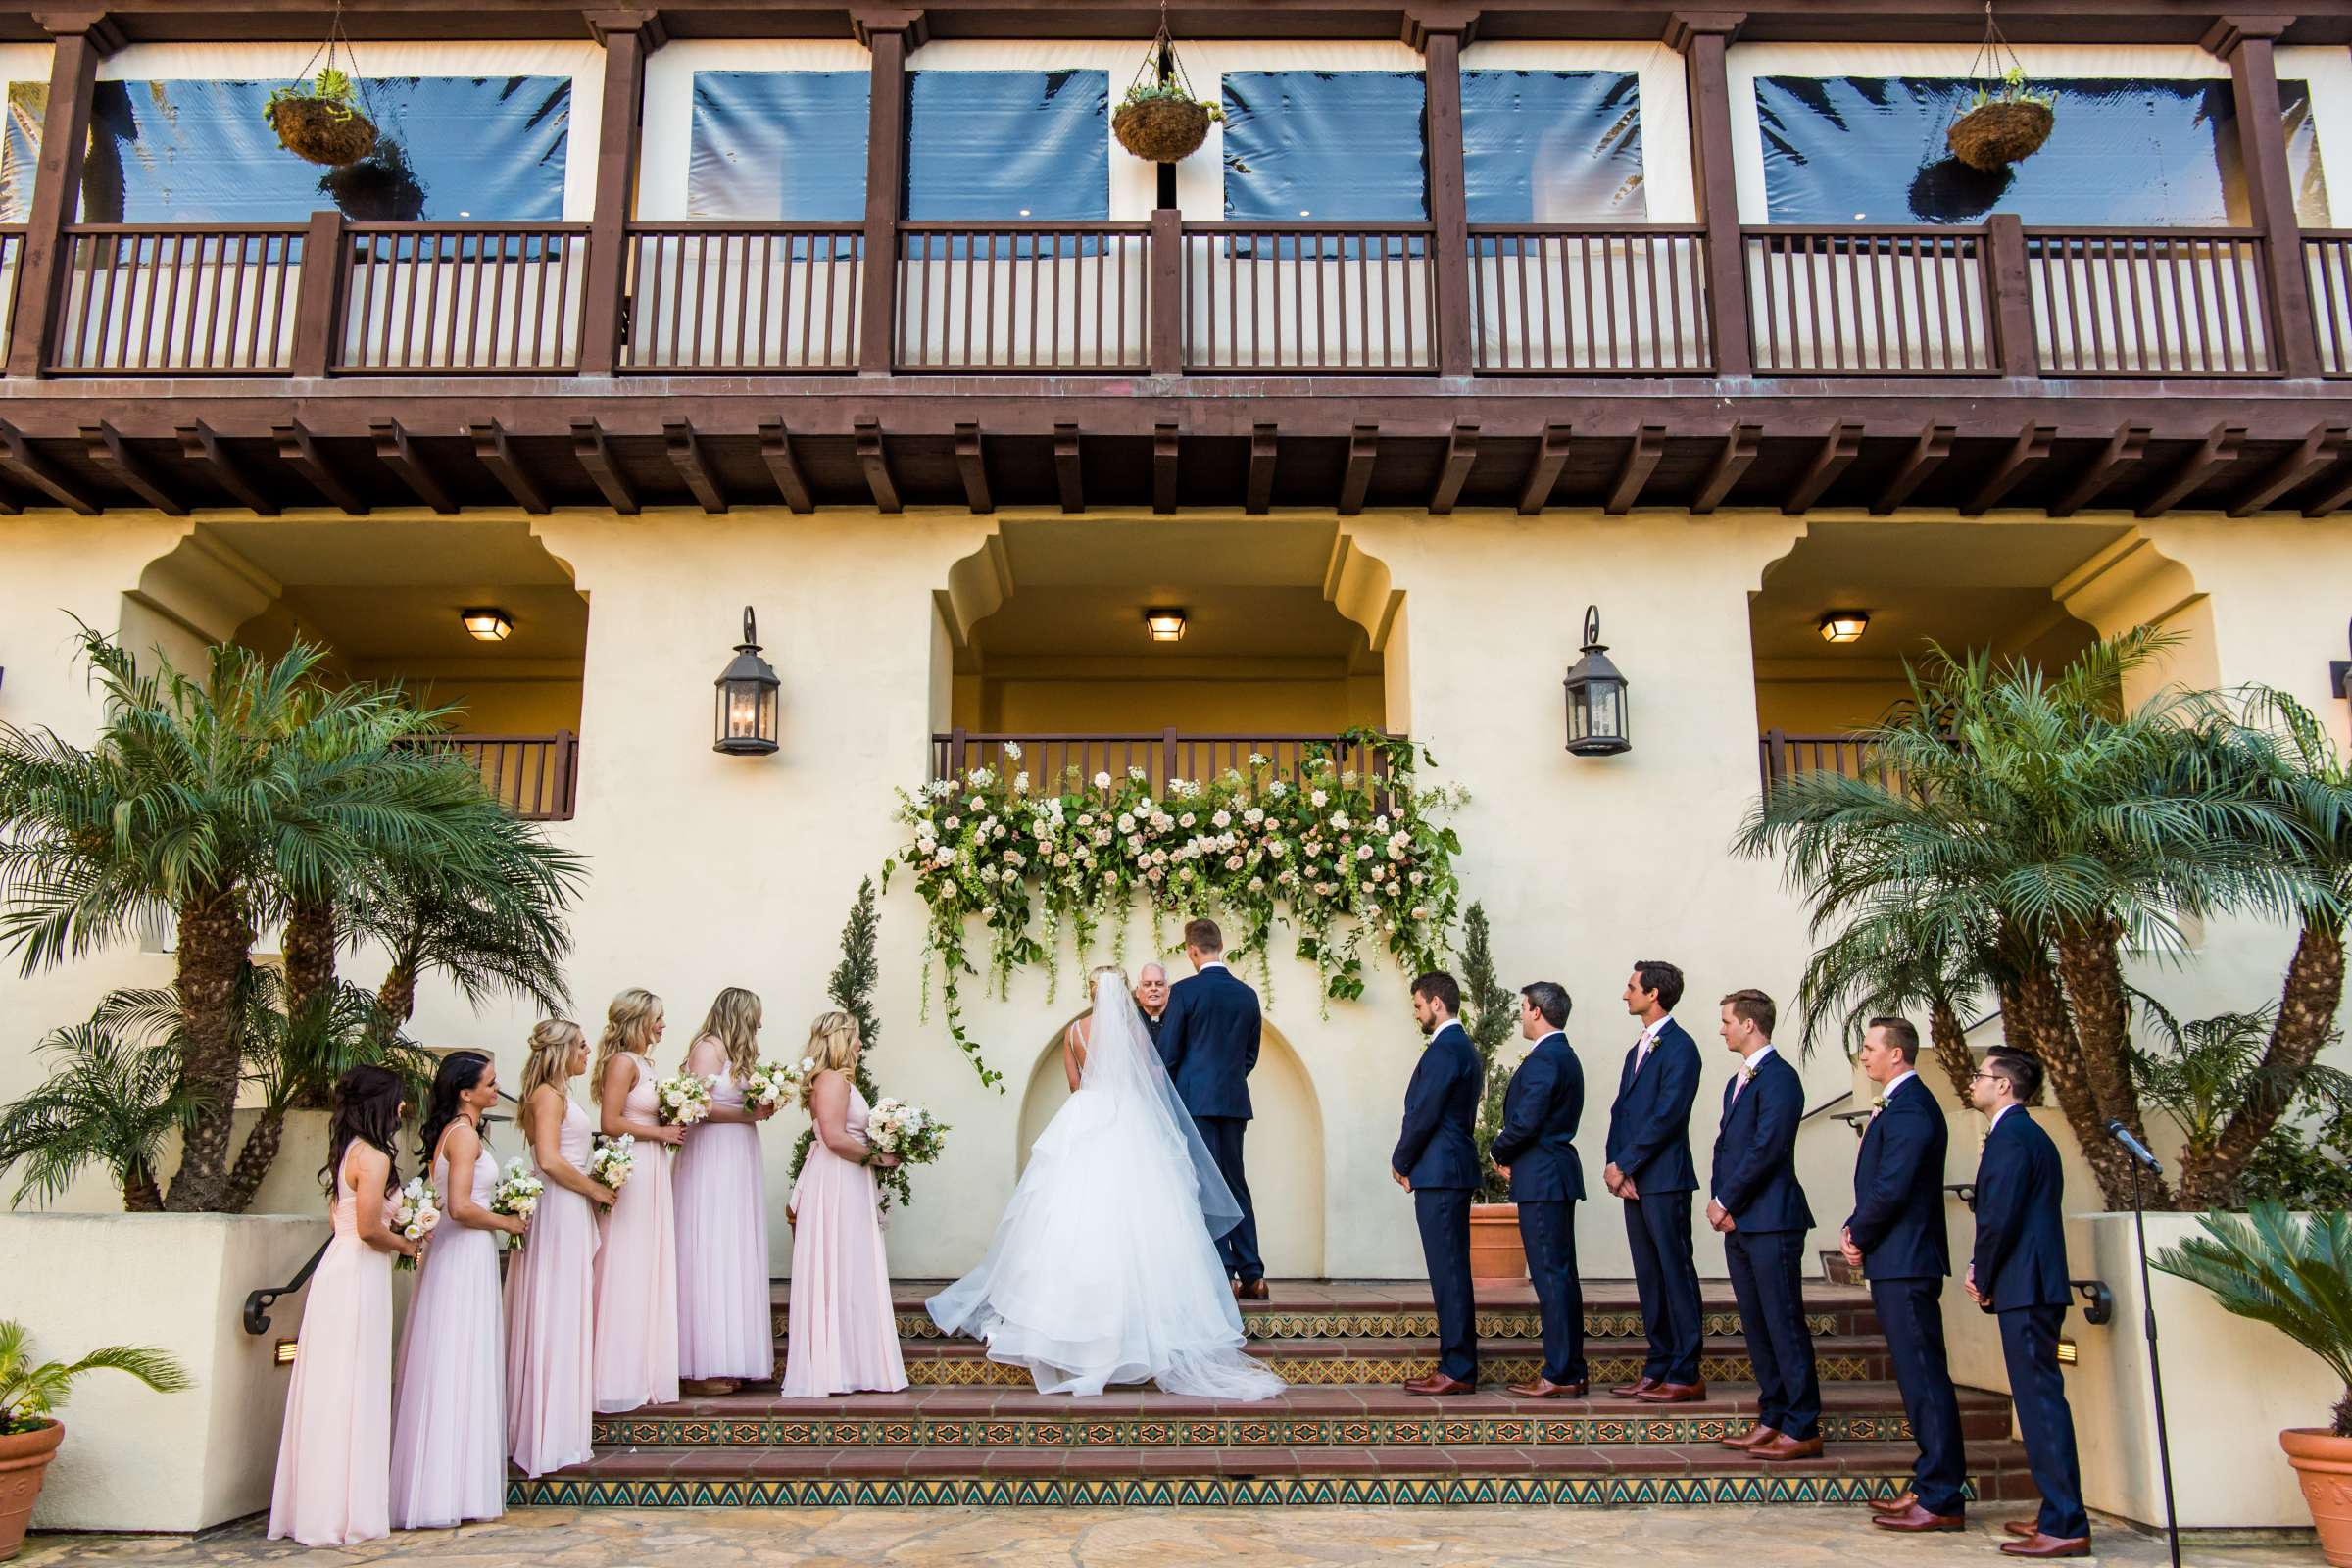 Estancia Wedding coordinated by Details Darling, Kaileigh and Richard Wedding Photo #94 by True Photography